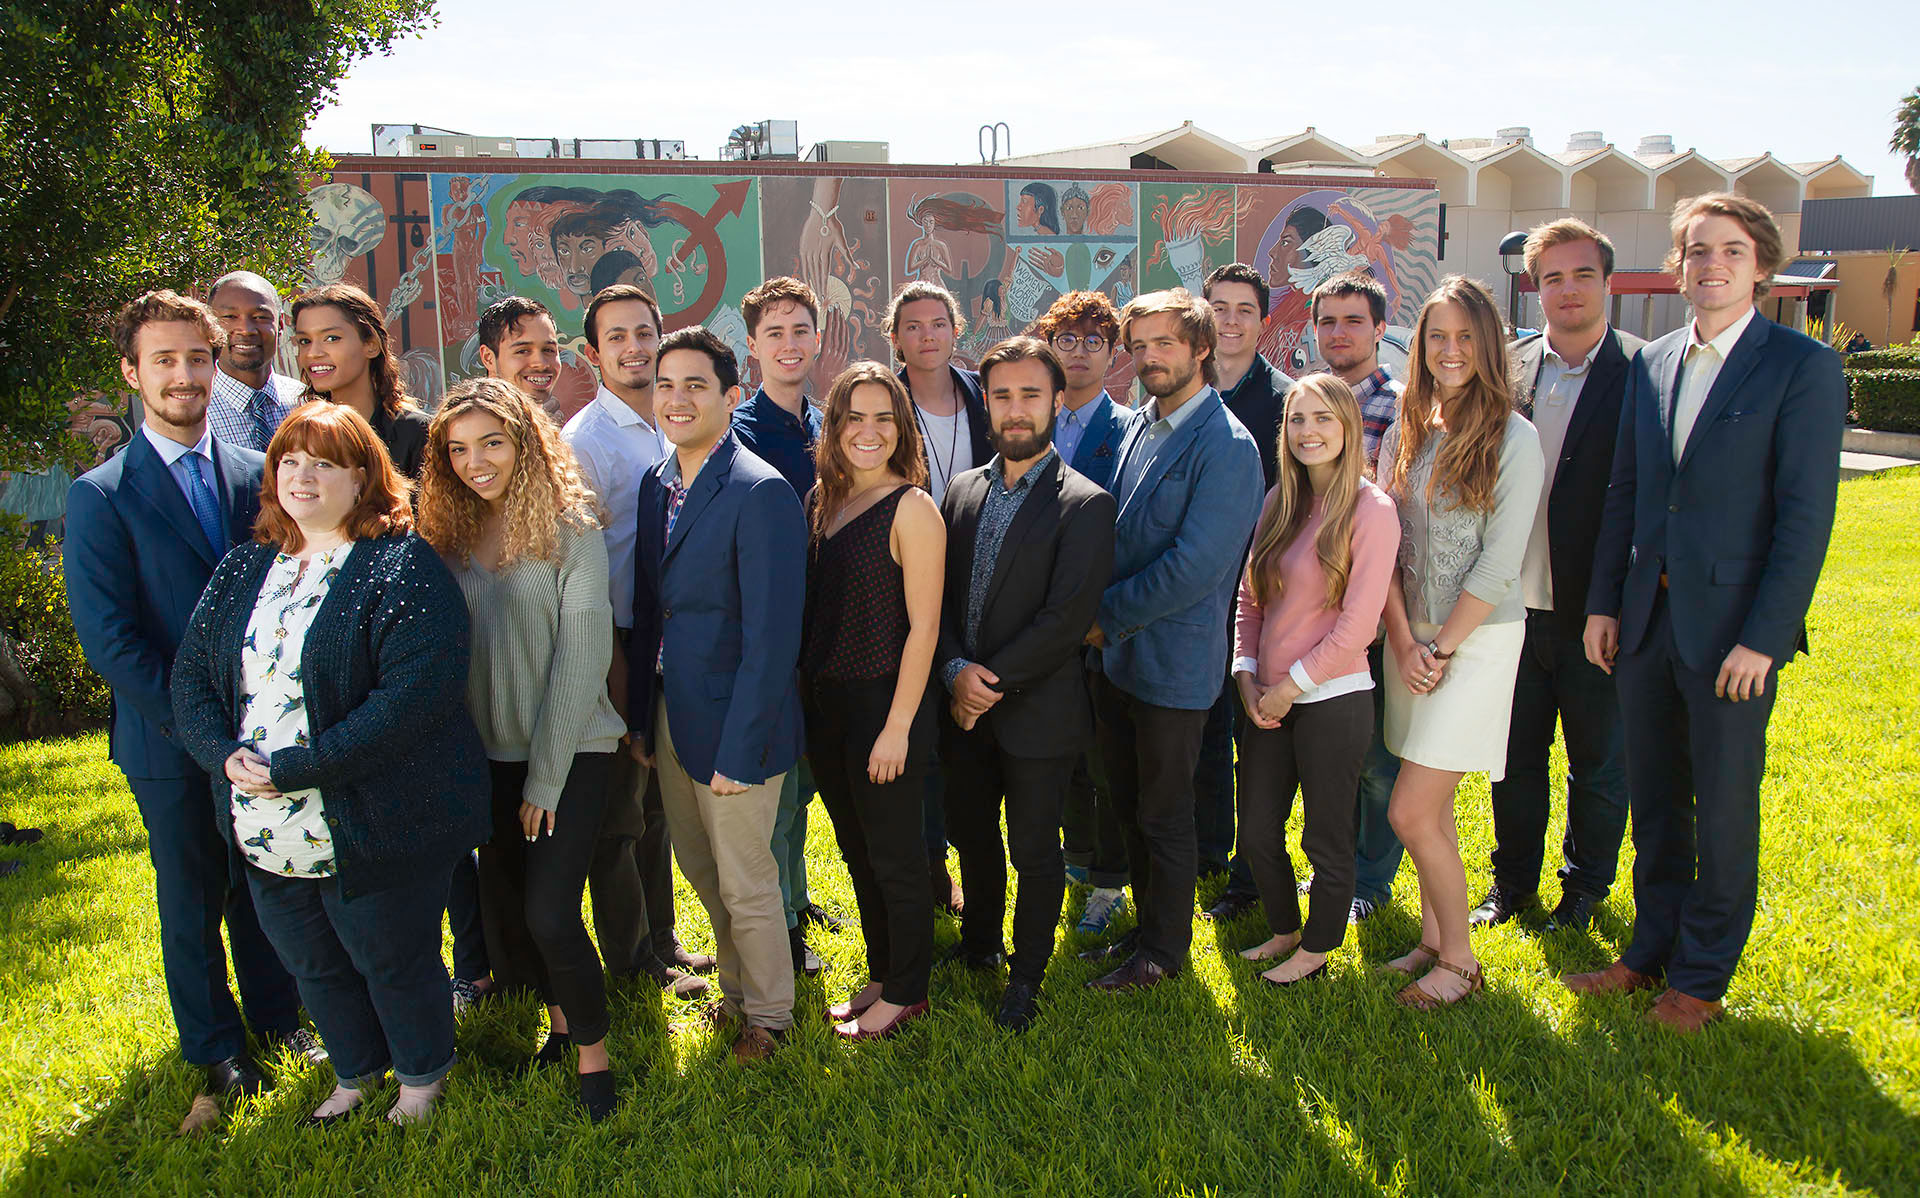 The Student Senate poses for a group portrait outside the Campus Center, Feb. 24, at  City College.